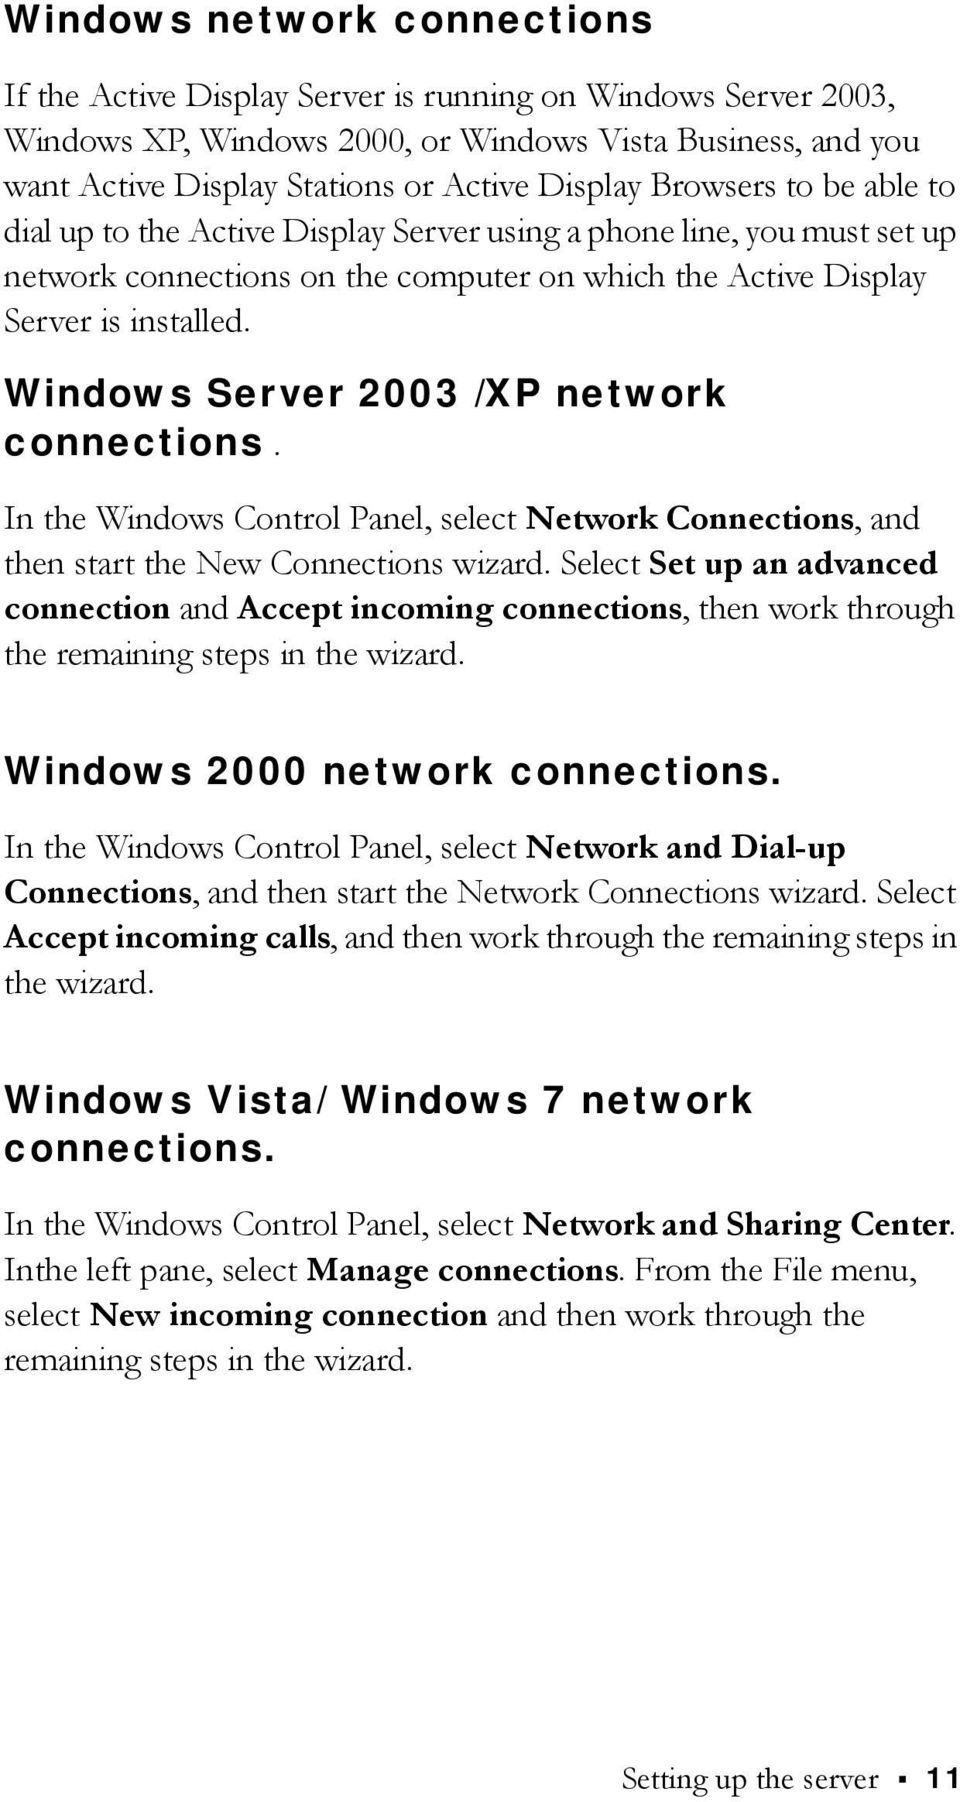 Windows Server 2003 /XP network connections. In the Windows Control Panel, select Network Connections, and then start the New Connections wizard.